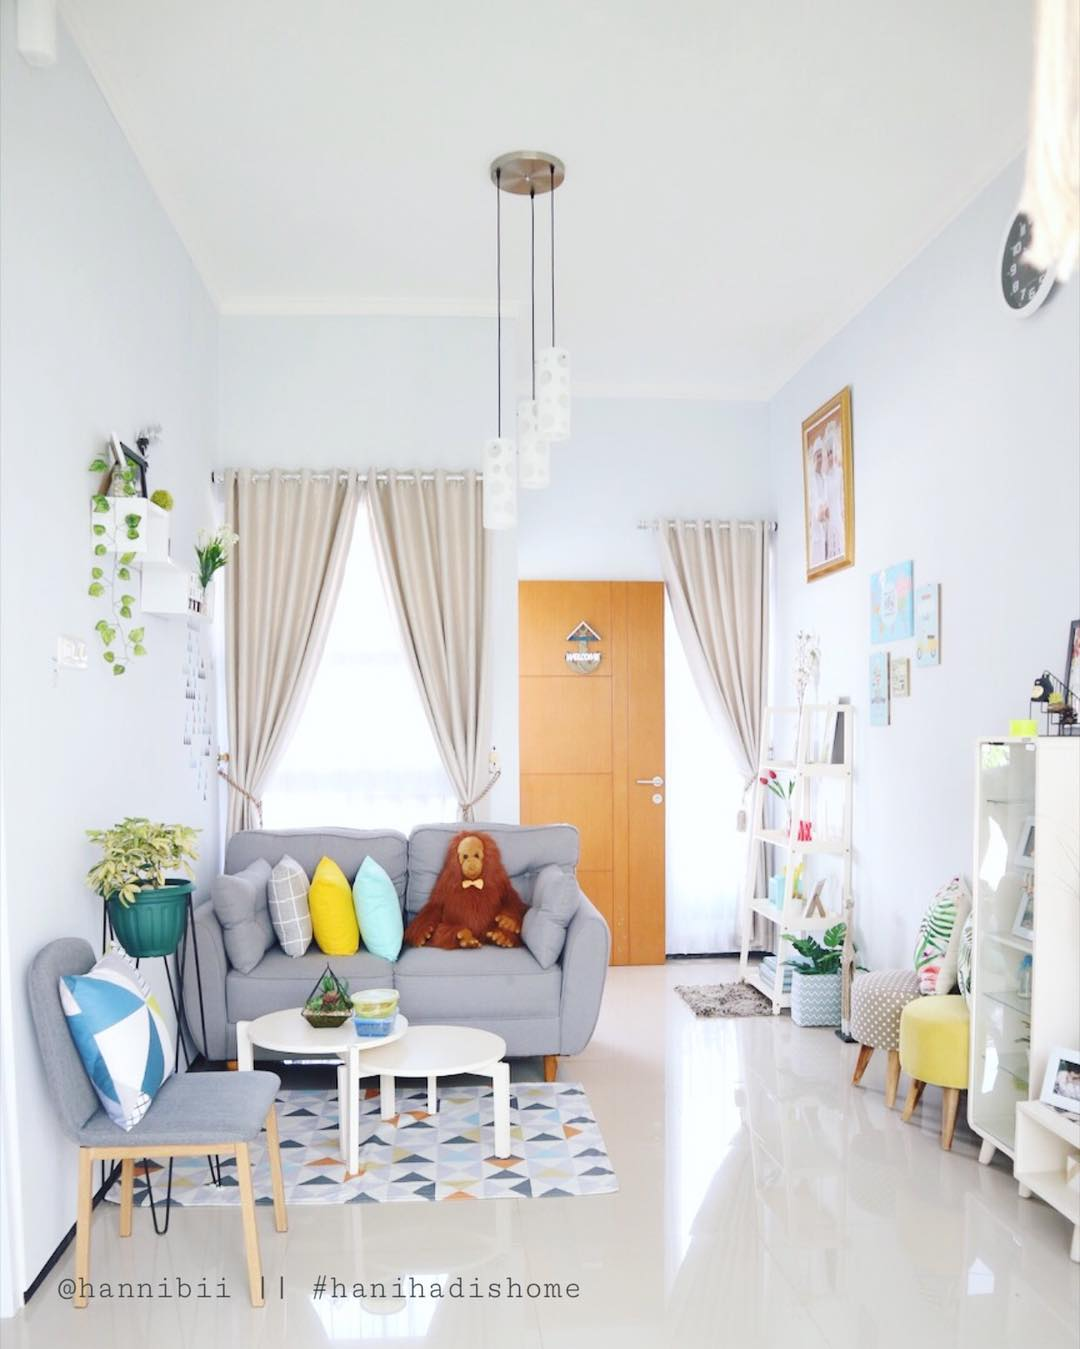 How To Keep A Minimalist House Keep Clean and Healthy